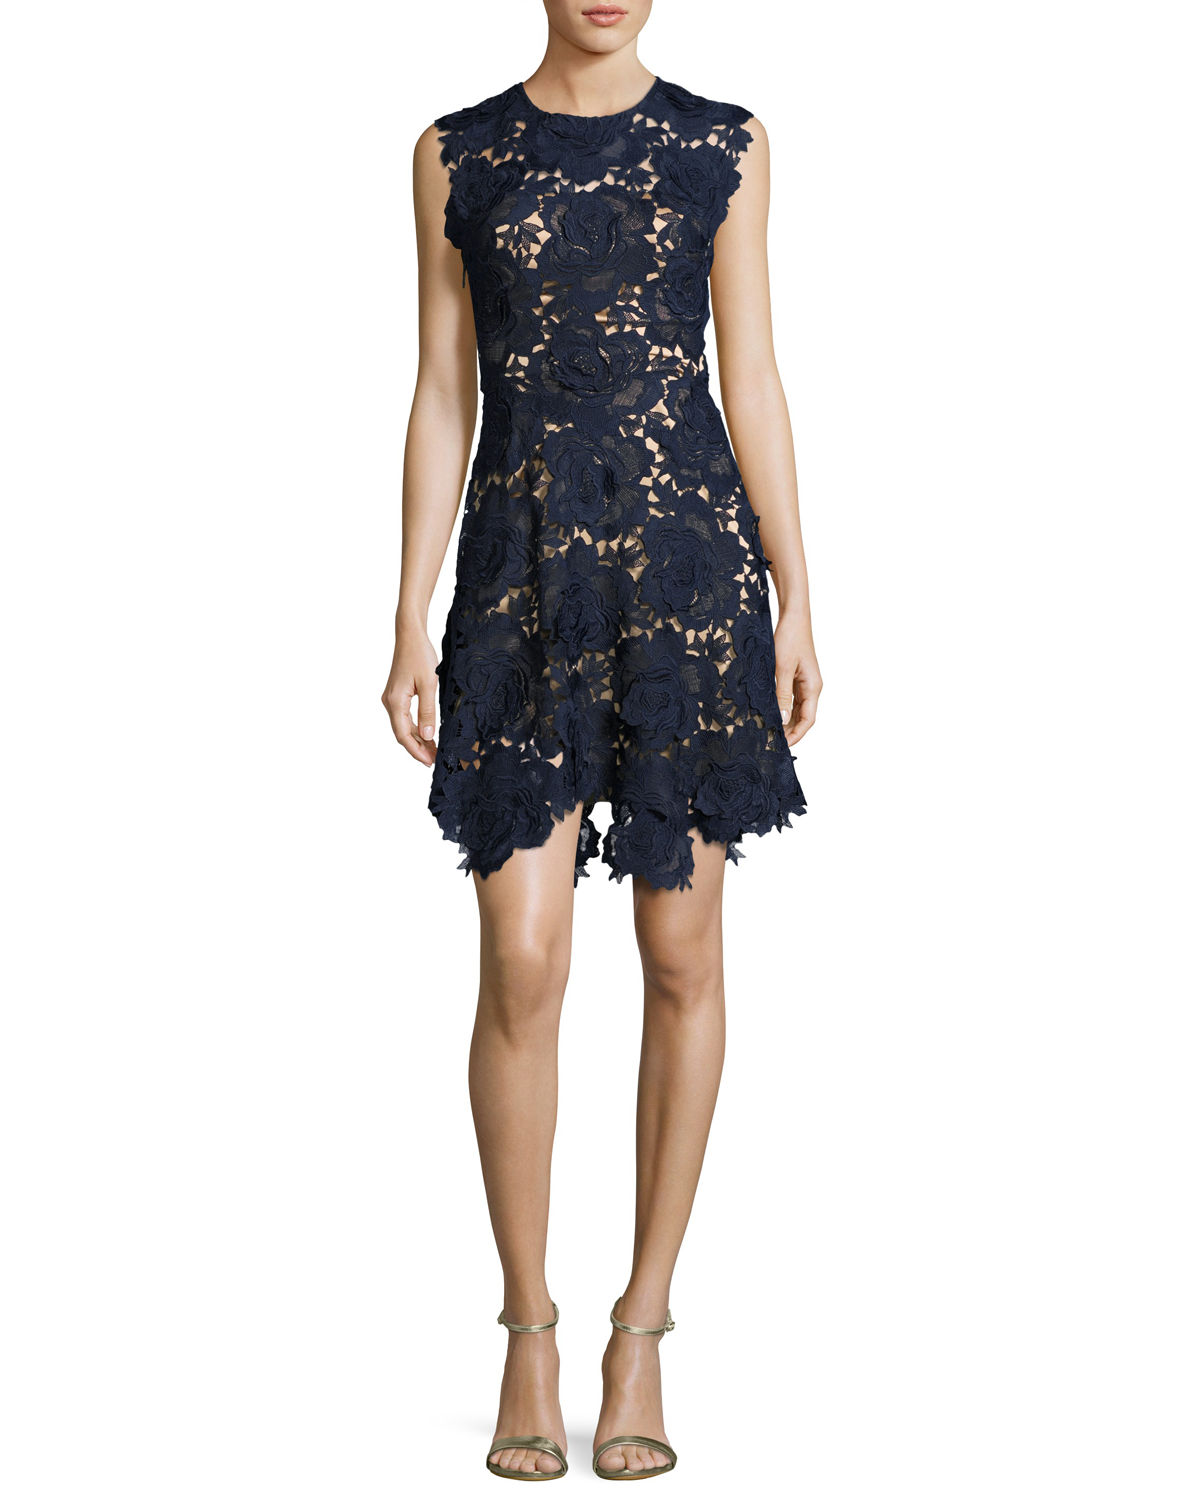 Cap-Sleeve Lace Fit & Flare Dress